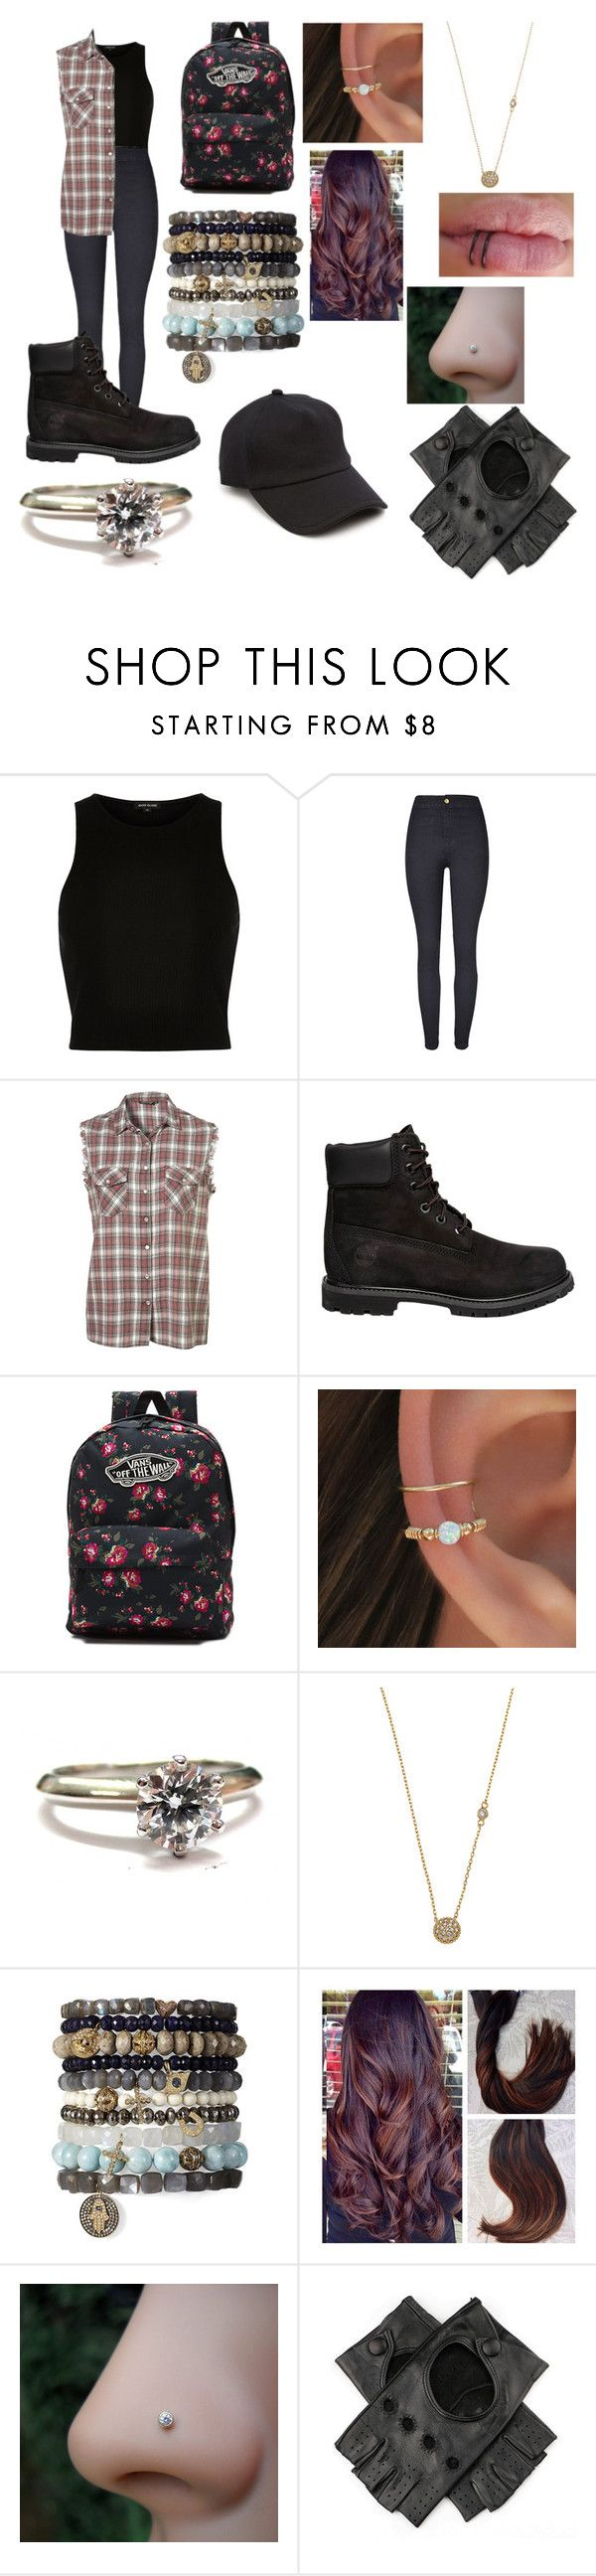 """027"" by emilypaul0400 on Polyvore featuring River Island, Timberland, Vans, Tiffany & Co., Blu Bijoux, Black and rag & bone"